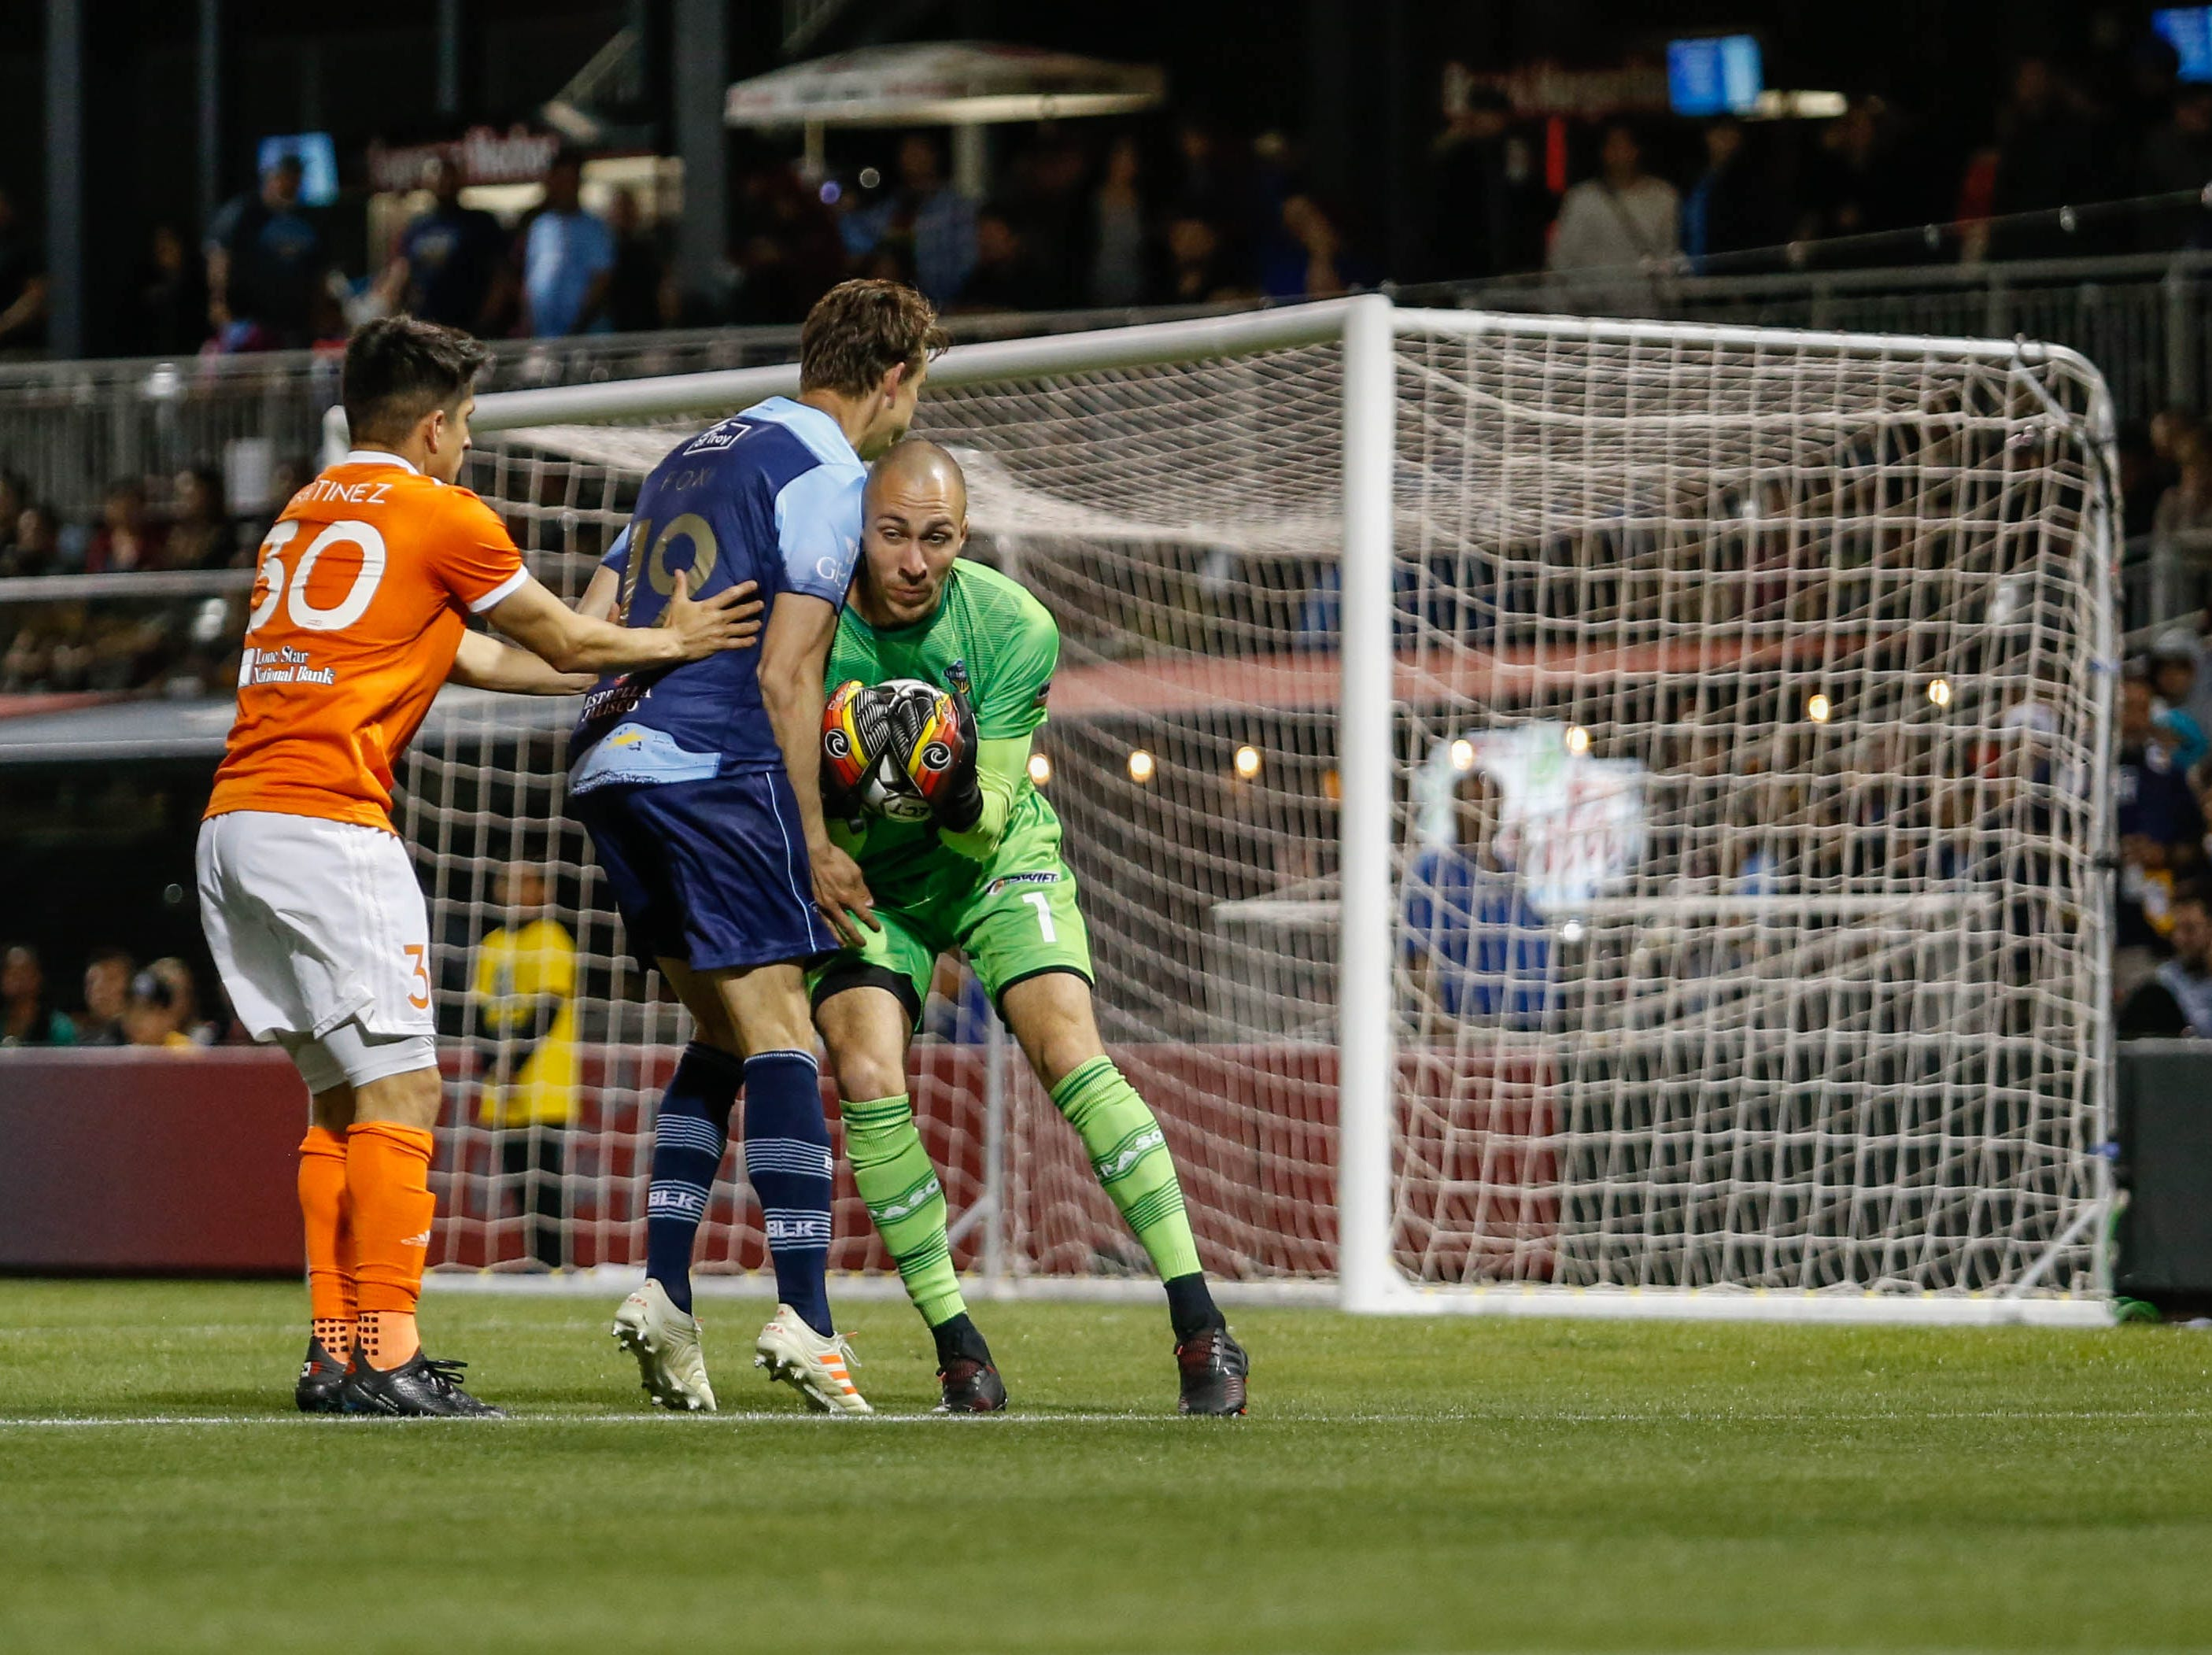 El Paso Locomotive goalkeeper Logan Ketterer grabs the ball before a Rio Grande Valley attacker can take possession of it.